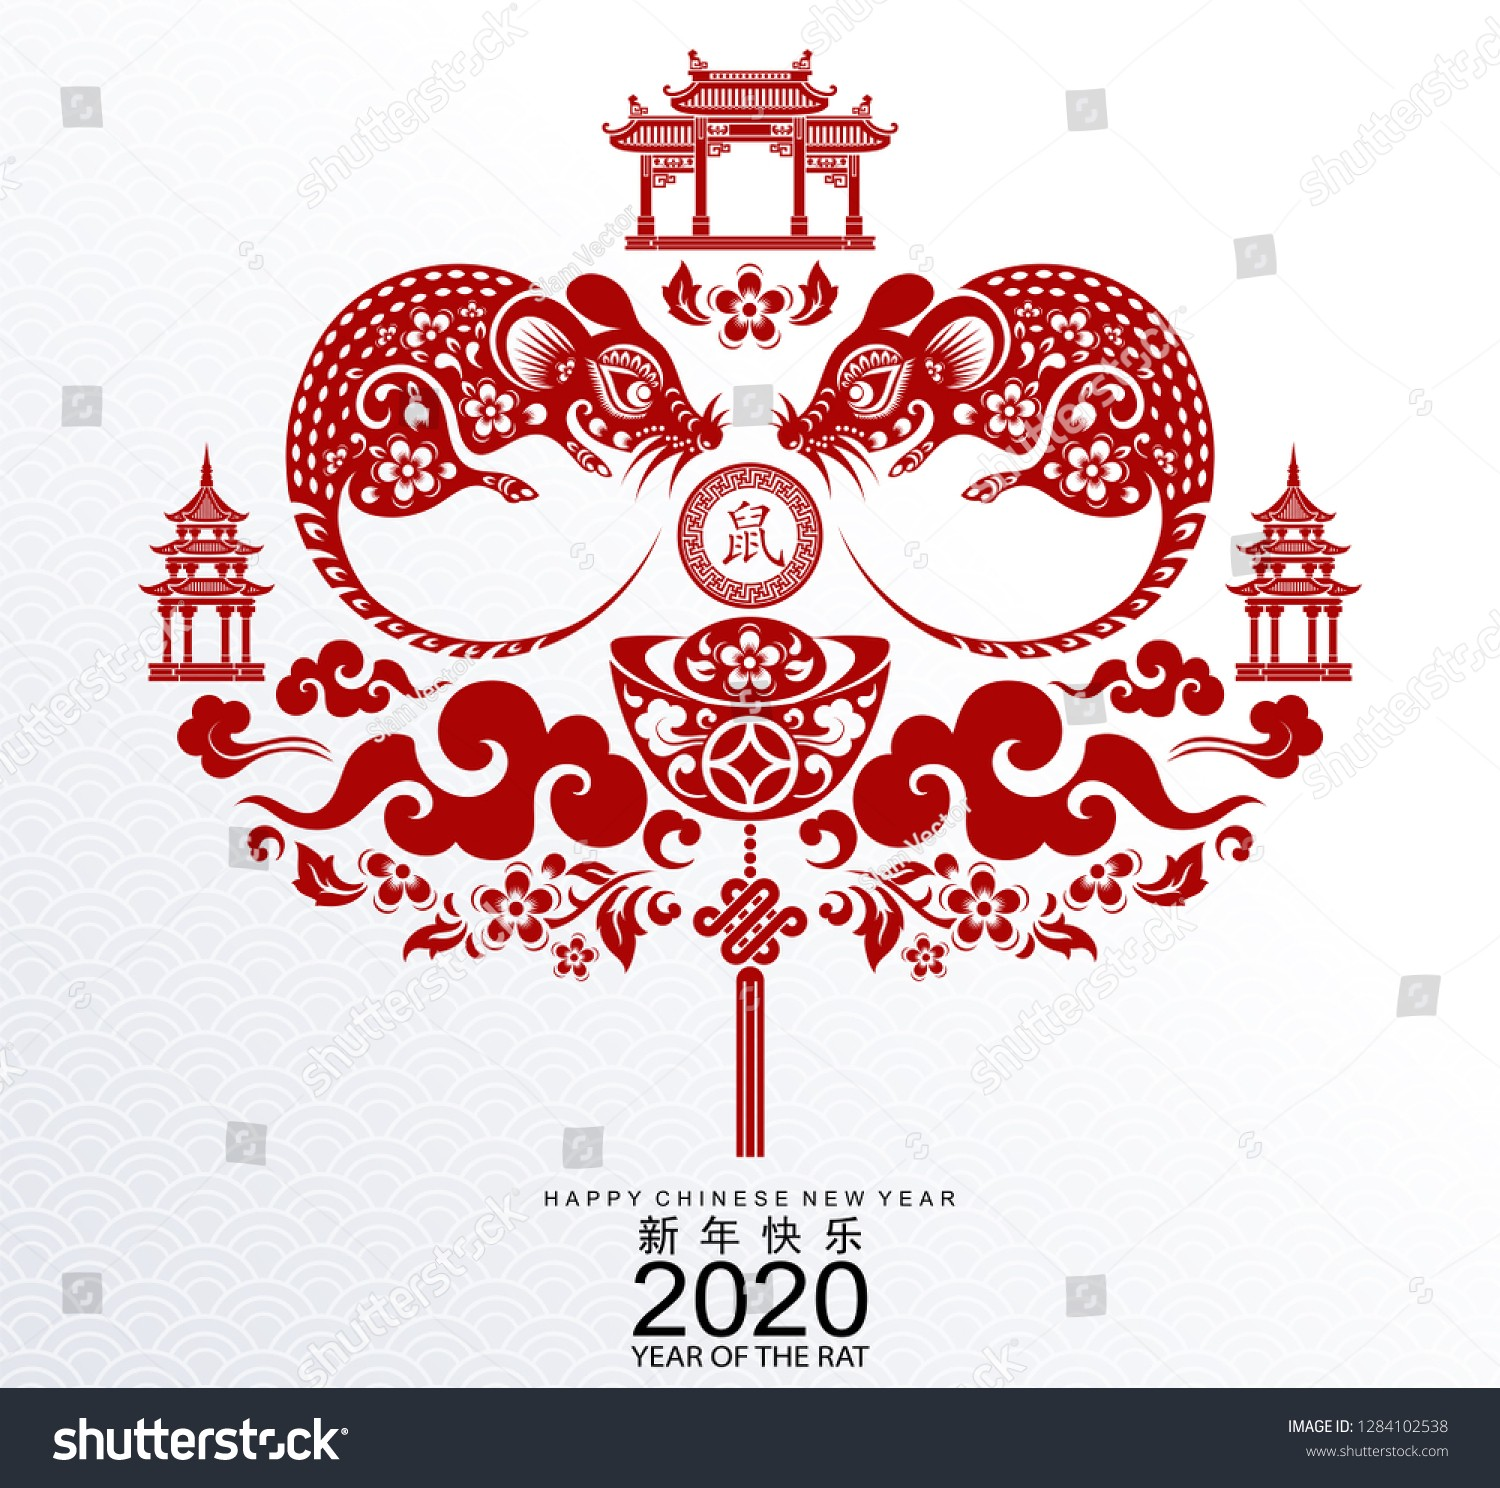 stock vector chinese new year year of the rat red paper cut rat character flower and asian elements with